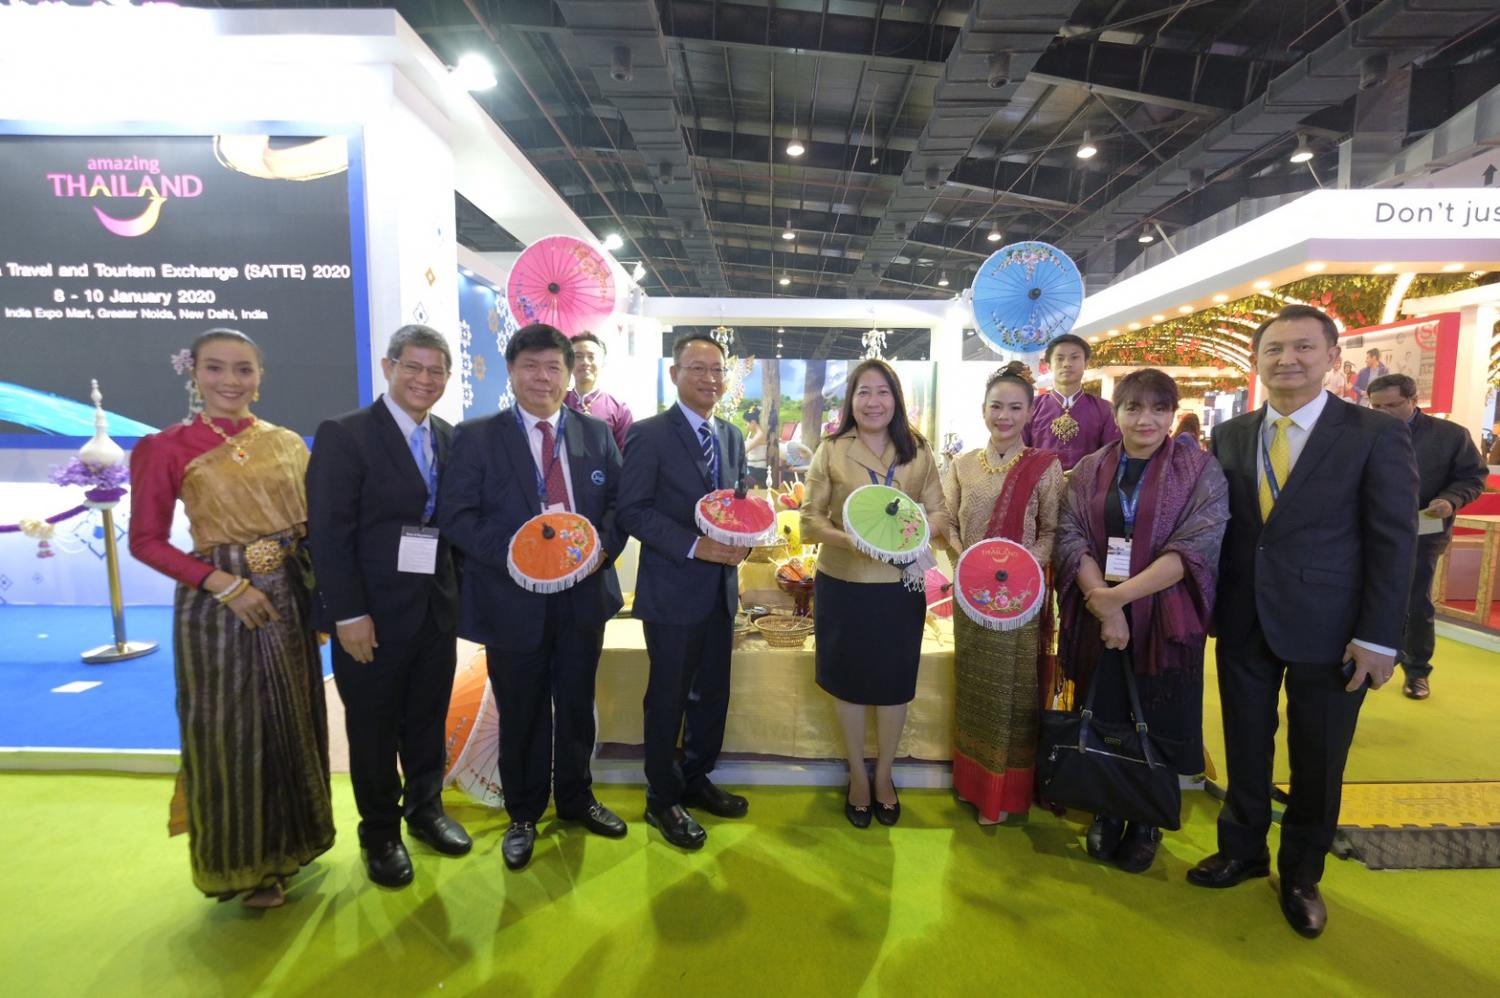 Mr Chattan (second left) and Mr Klissada (far right) at the opening ceremony for the Thailand pavilion at the South Asia Travel and Tourism Exchange in India.